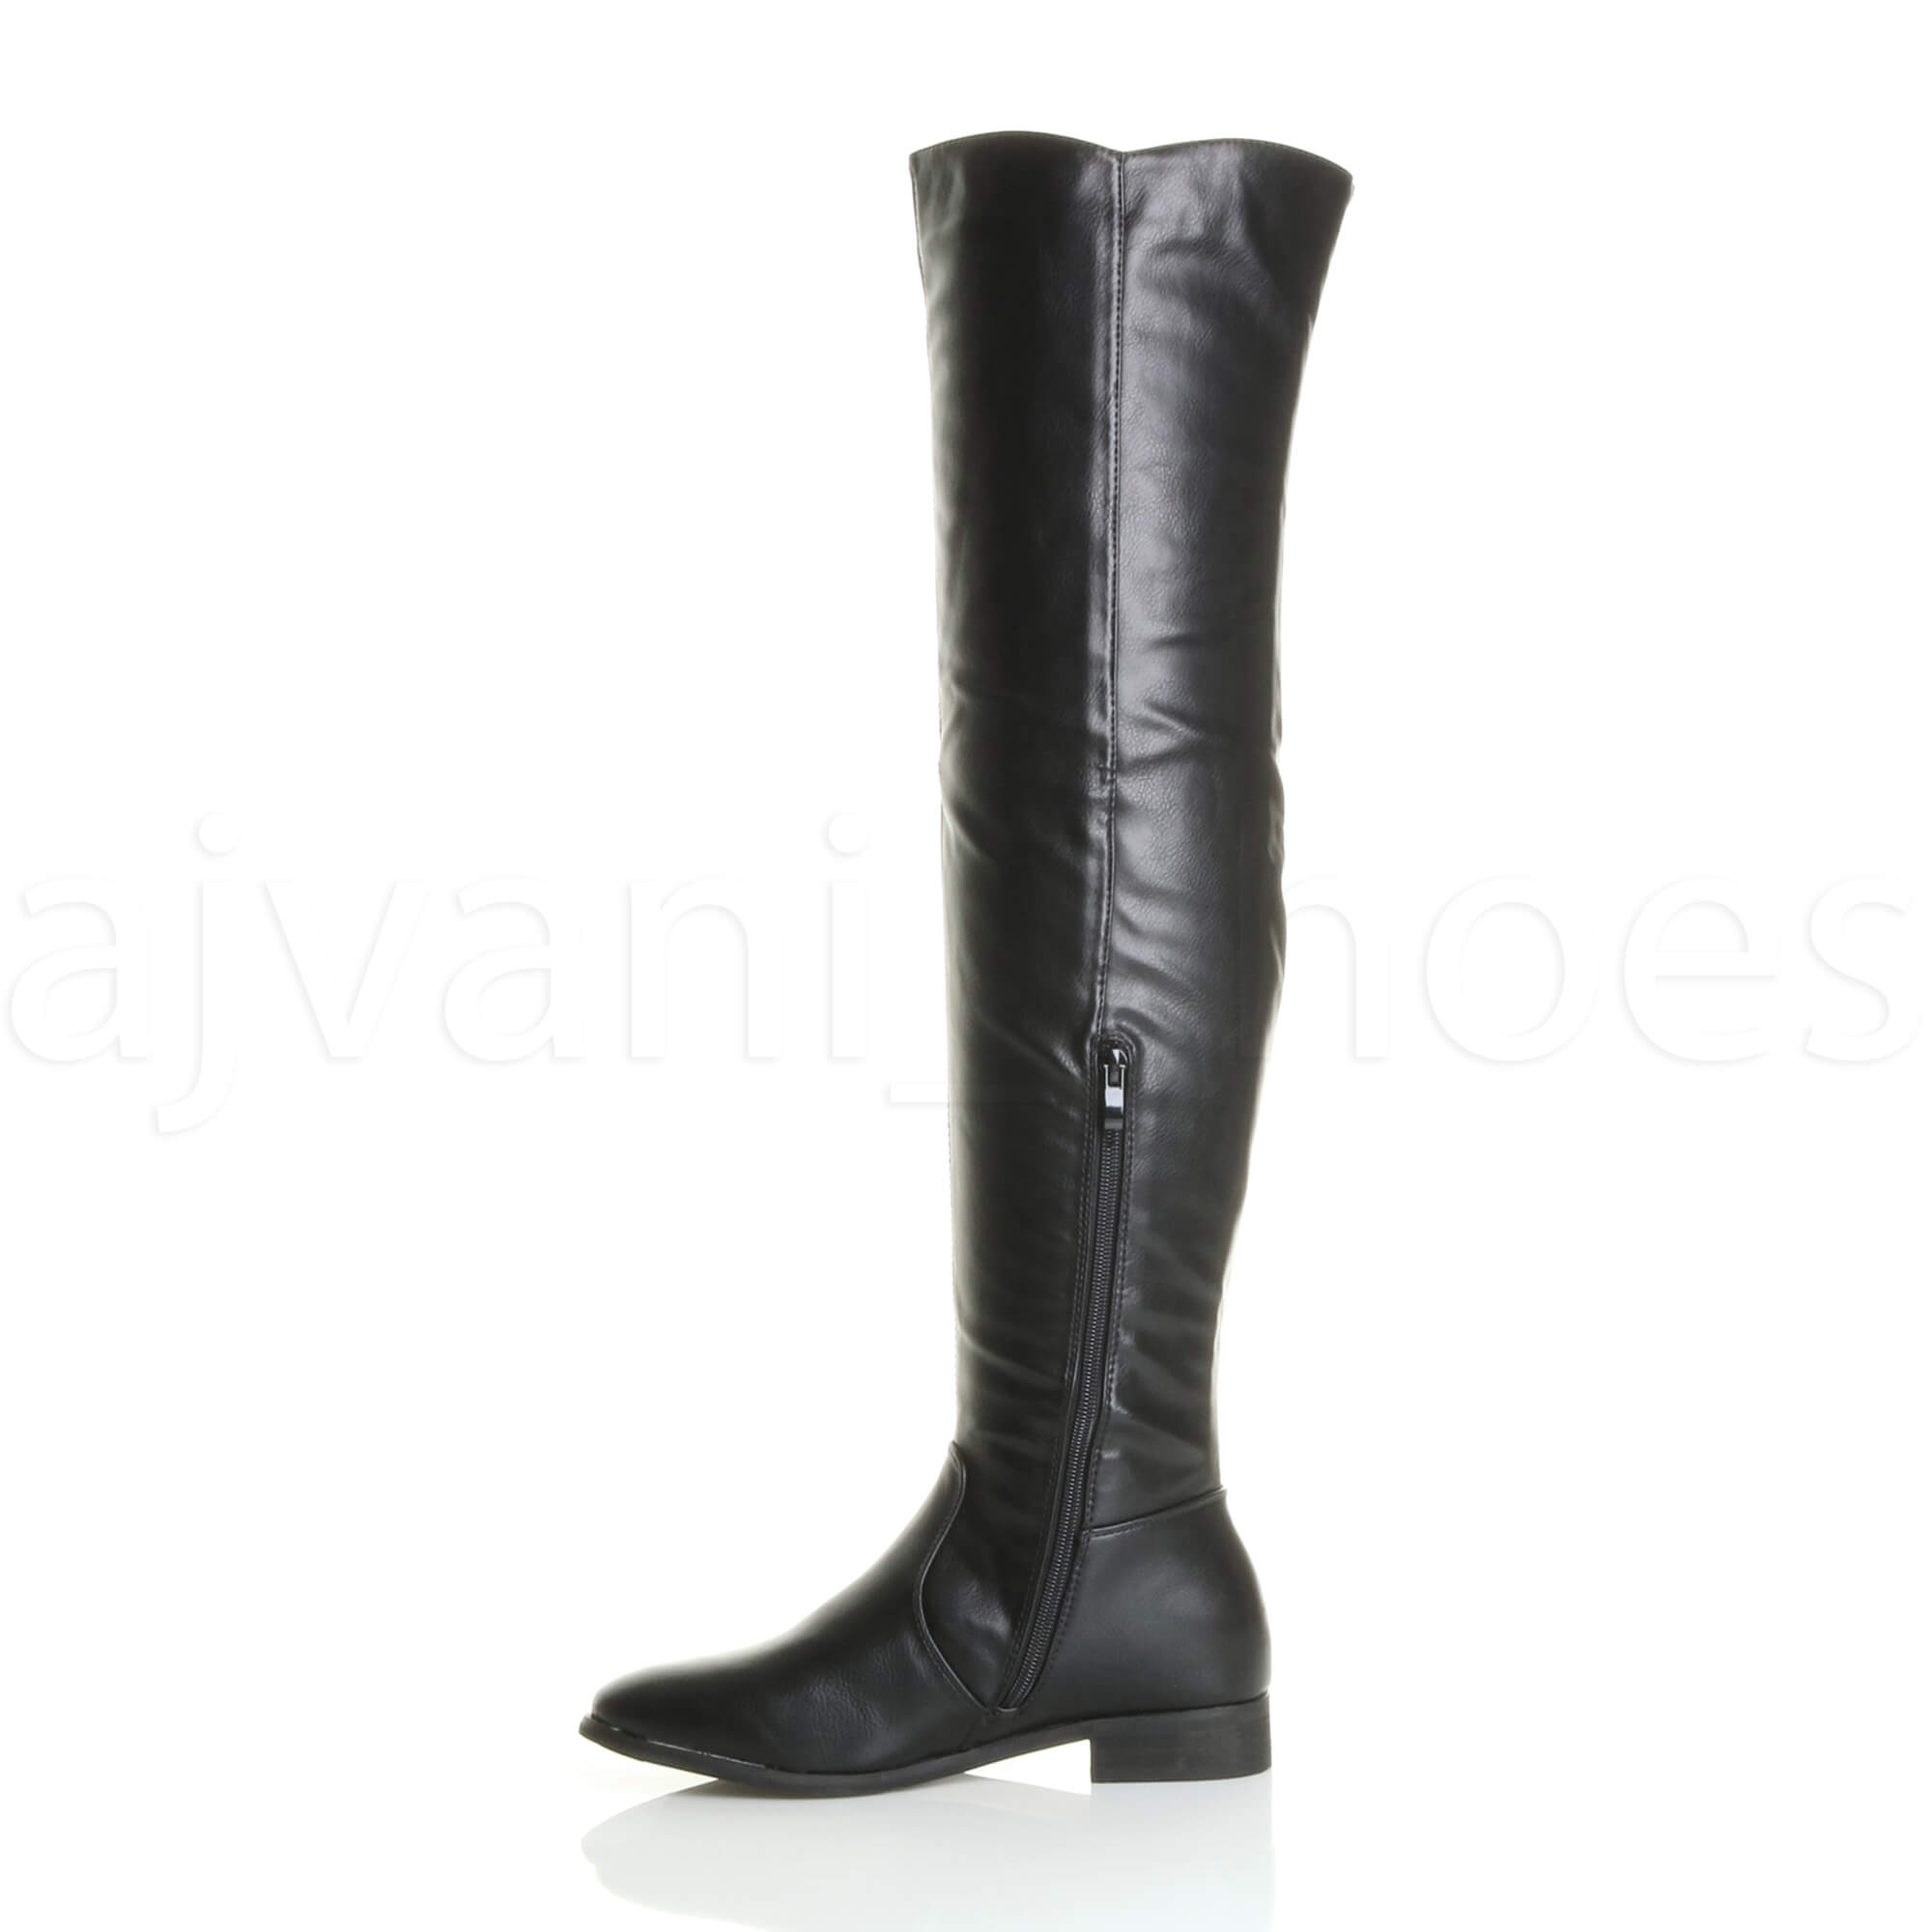 WOMENS LADIES FLAT LOW HEEL CHELSEA ELASTIC STRETCH OVER THE KNEE HIGH BOOTS